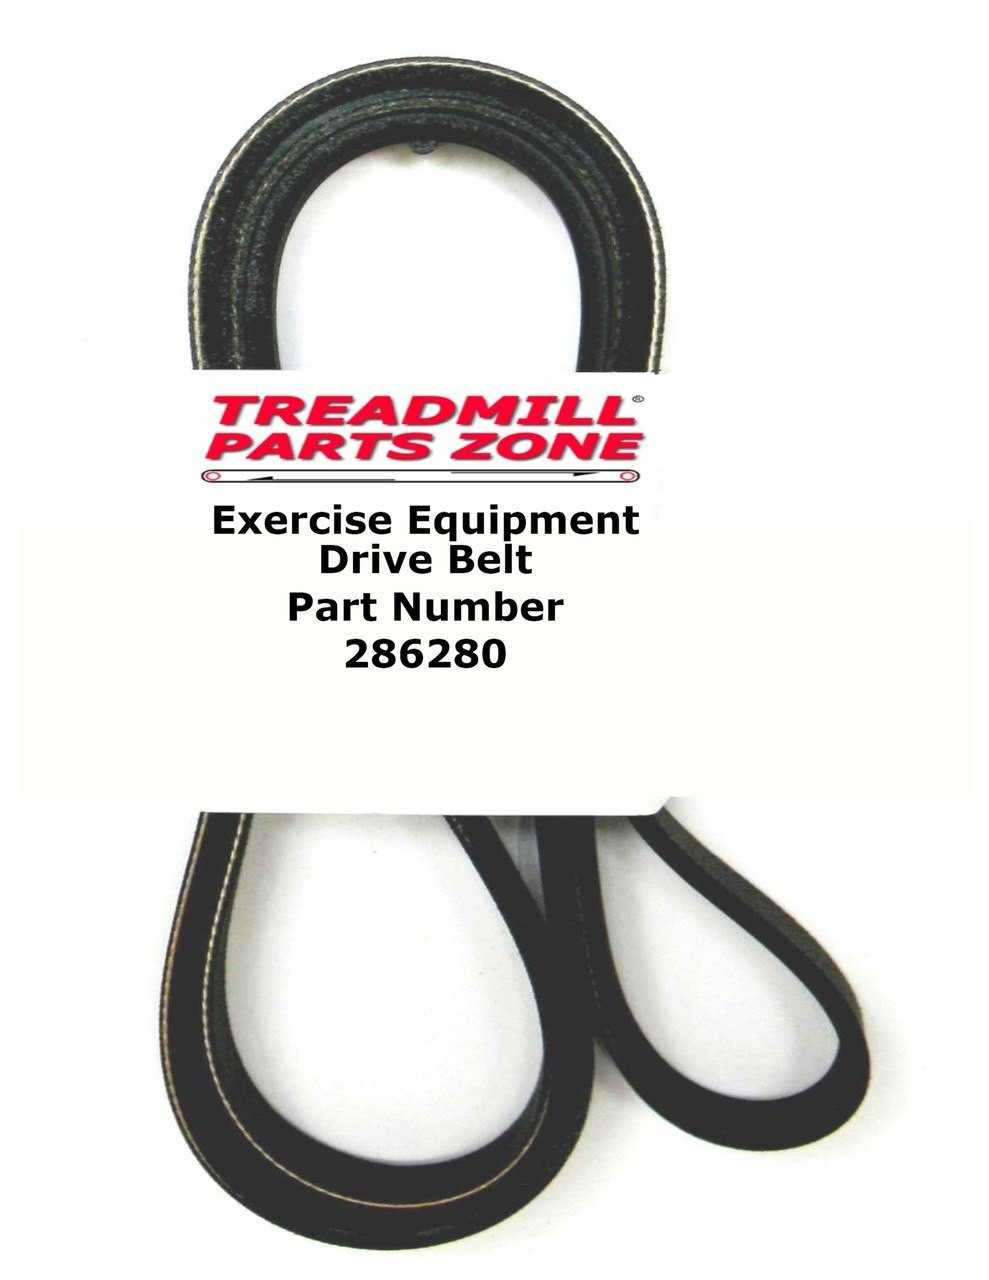 Golds Gym Model GGEX616121 CYCLE TRAINER 290 C Bike Drive Belt Part 286280